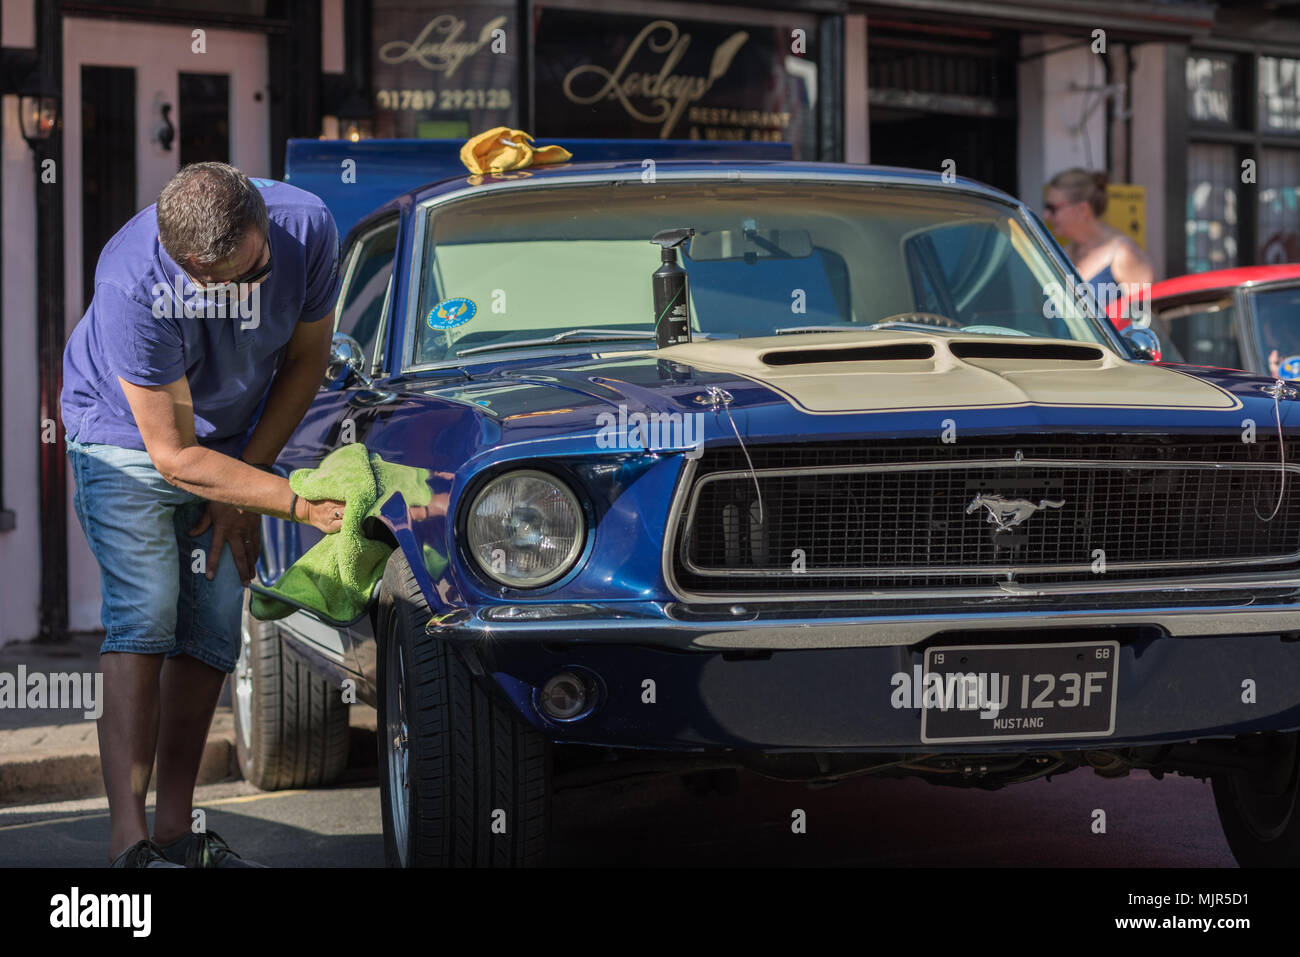 Stratford on Avon, UK, 6 May 2018. Rare, Impressive and Classic Cars on public display  of all ages on public display in the town centre streets of Stratford on Avon, Warwickshire for the 6th & 7th May 2018 Bank Holiday's Stratford Festival of Motoring. Credit: 79Photography/Alamy Live News - Stock Image